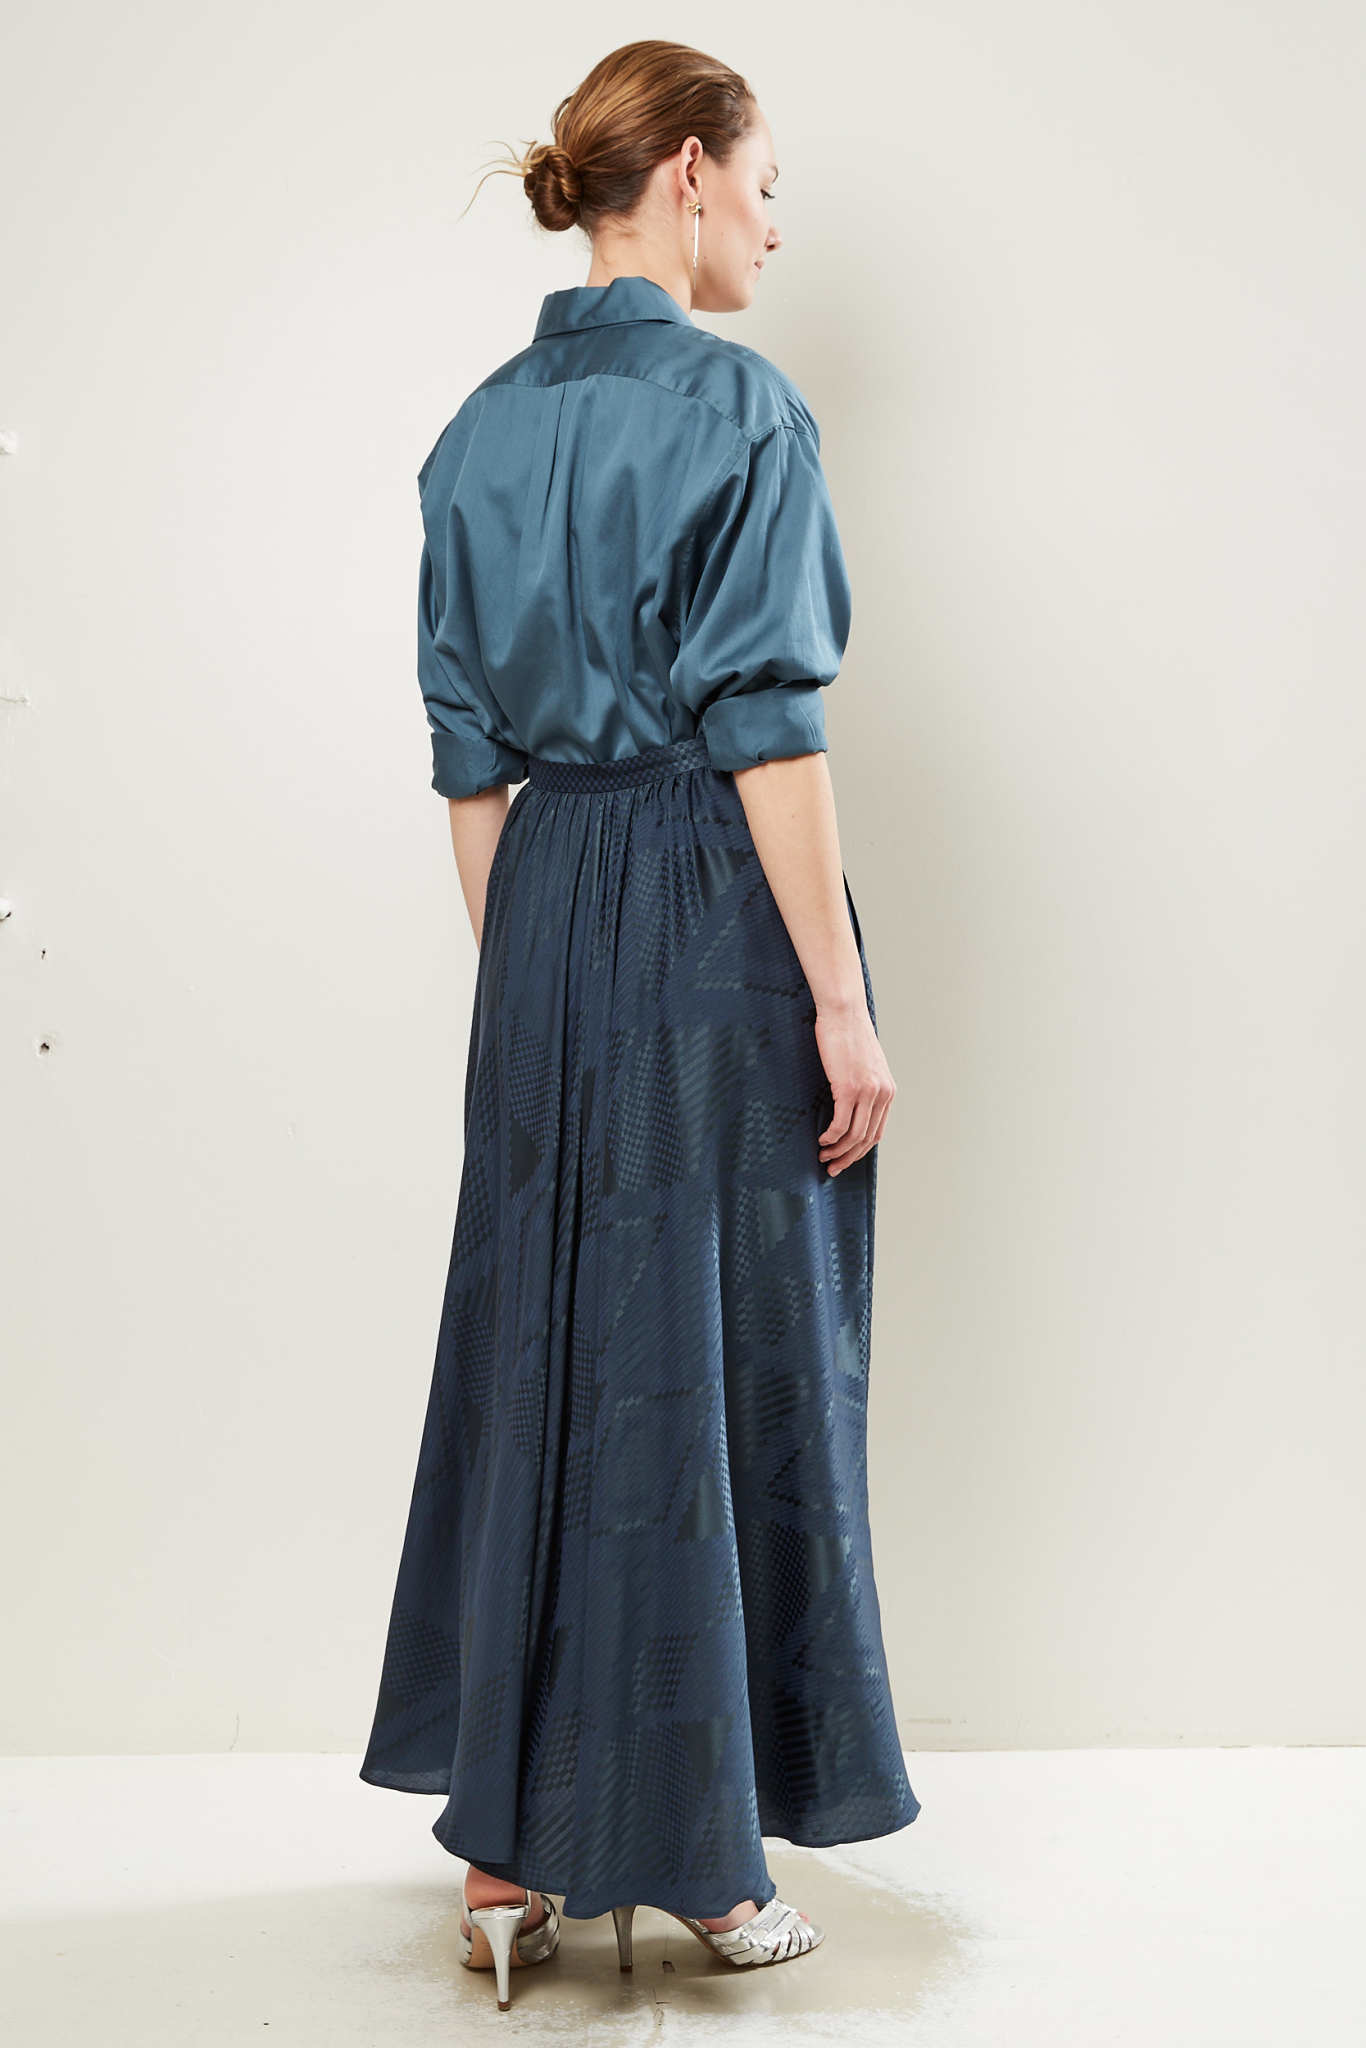 inDRESS - Silk jaquard skirt